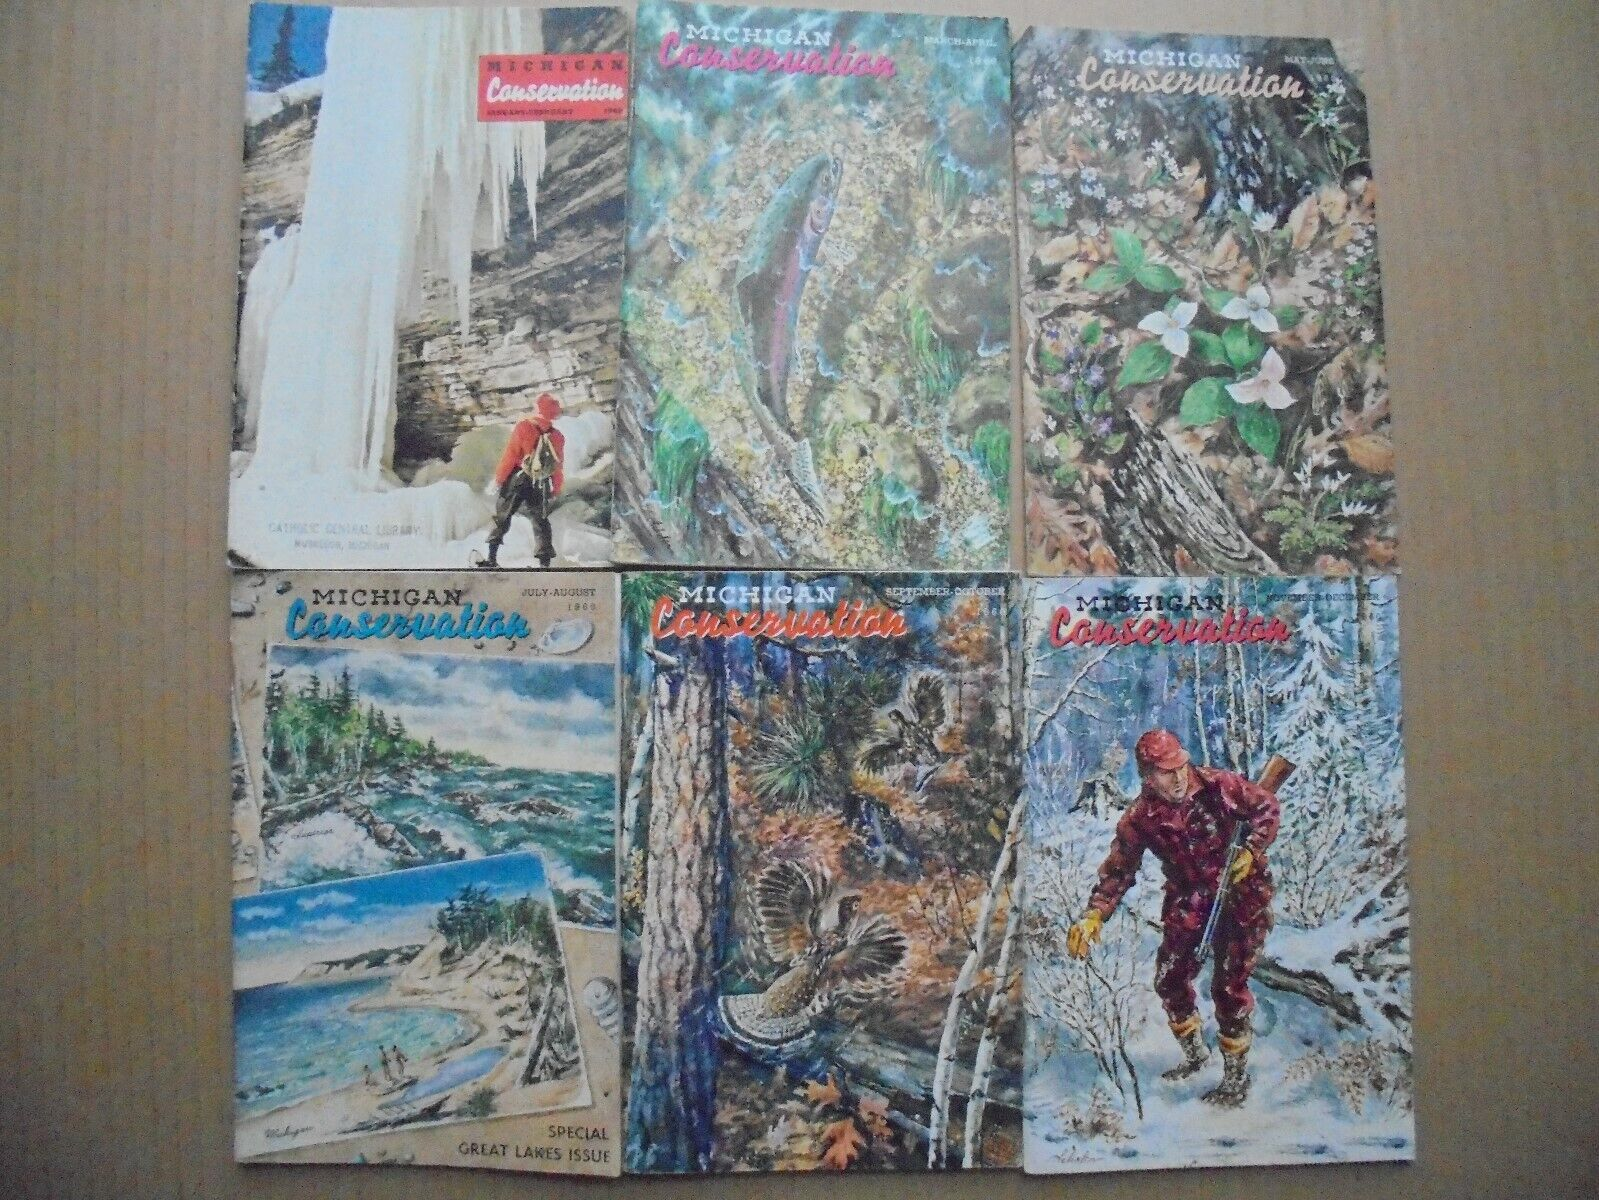 1960 MICHIGAN CONSERVATION MAGAZINES ALL SIX - HUNTING, FISHING AND MORE.  - $17.95